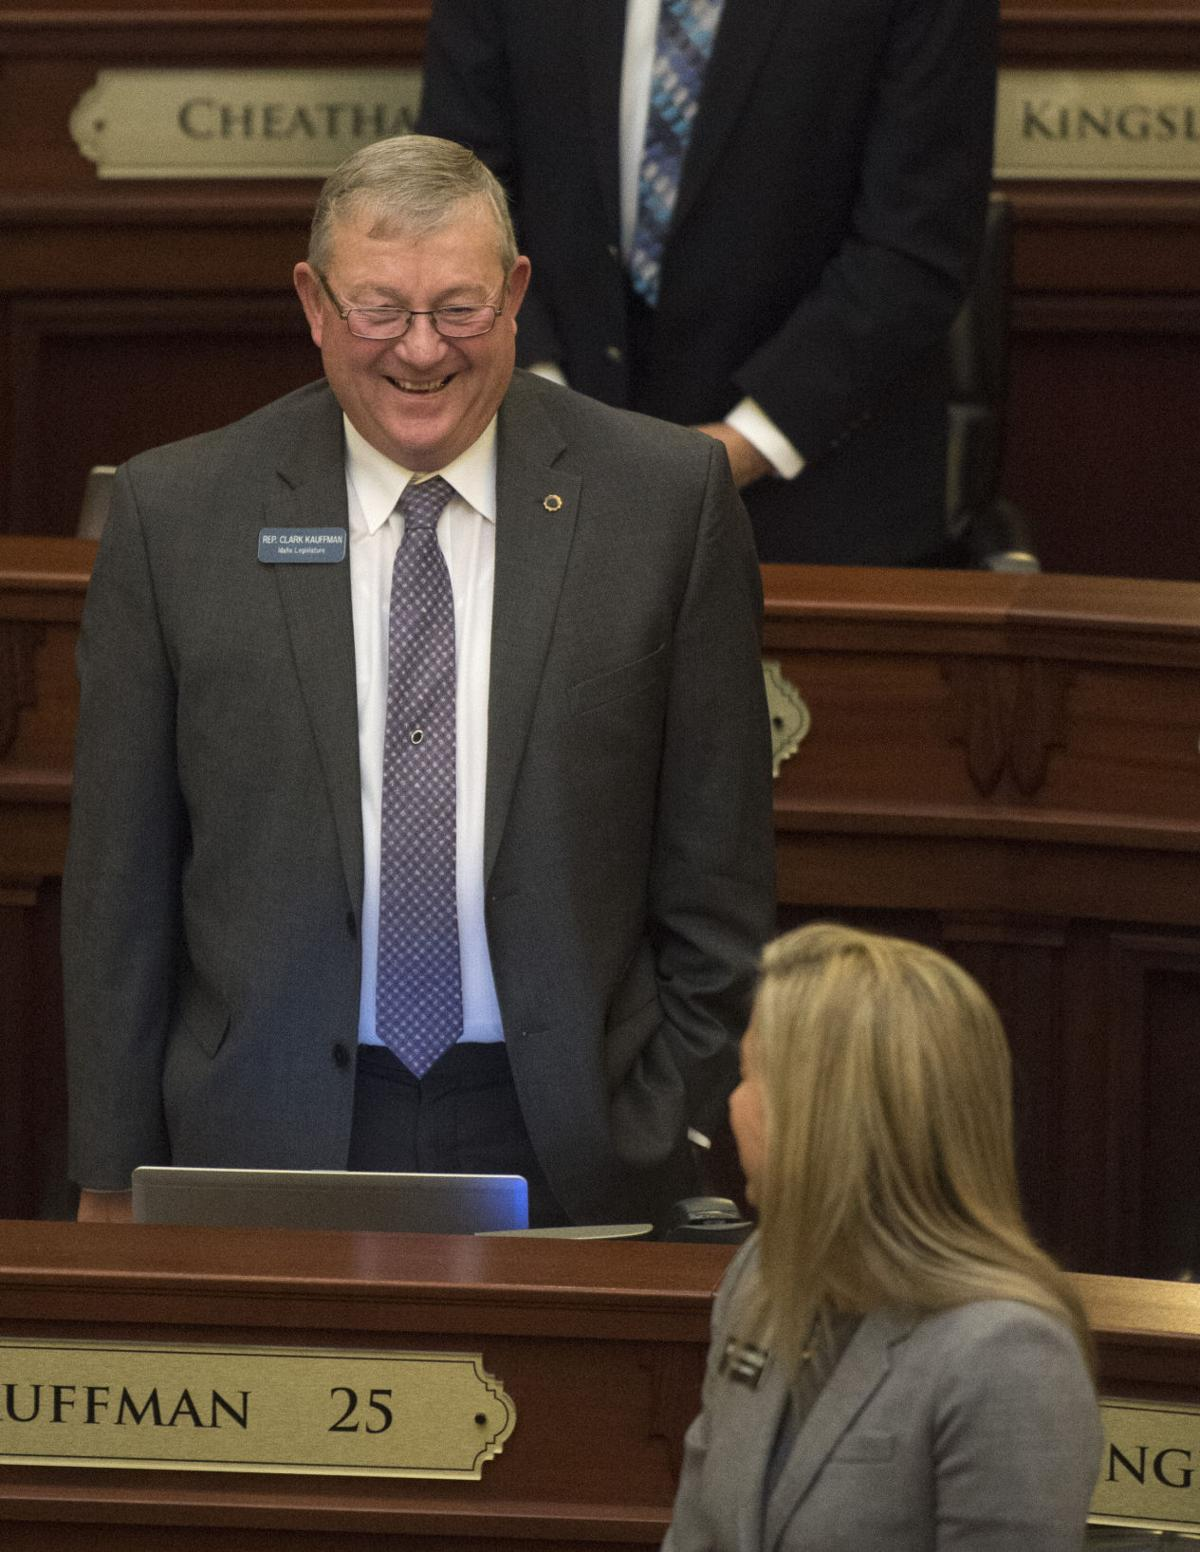 State of the State address, 2017